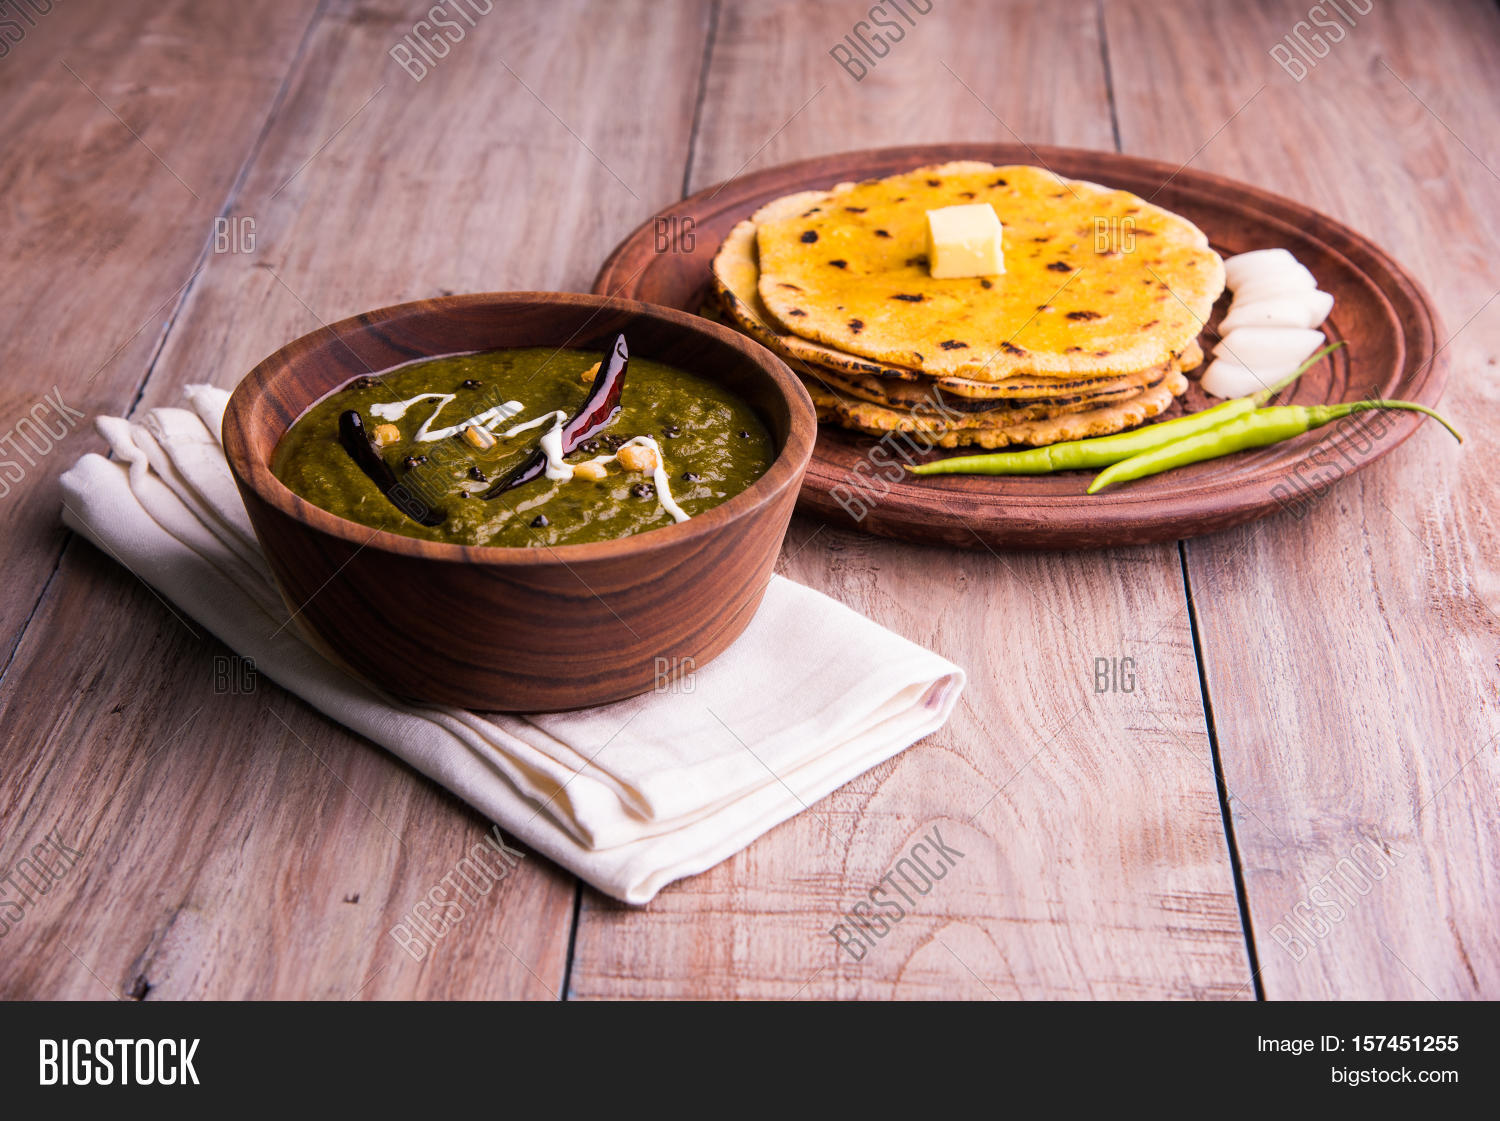 Corn flour flat bread image photo free trial bigstock close image preview image preview forumfinder Gallery